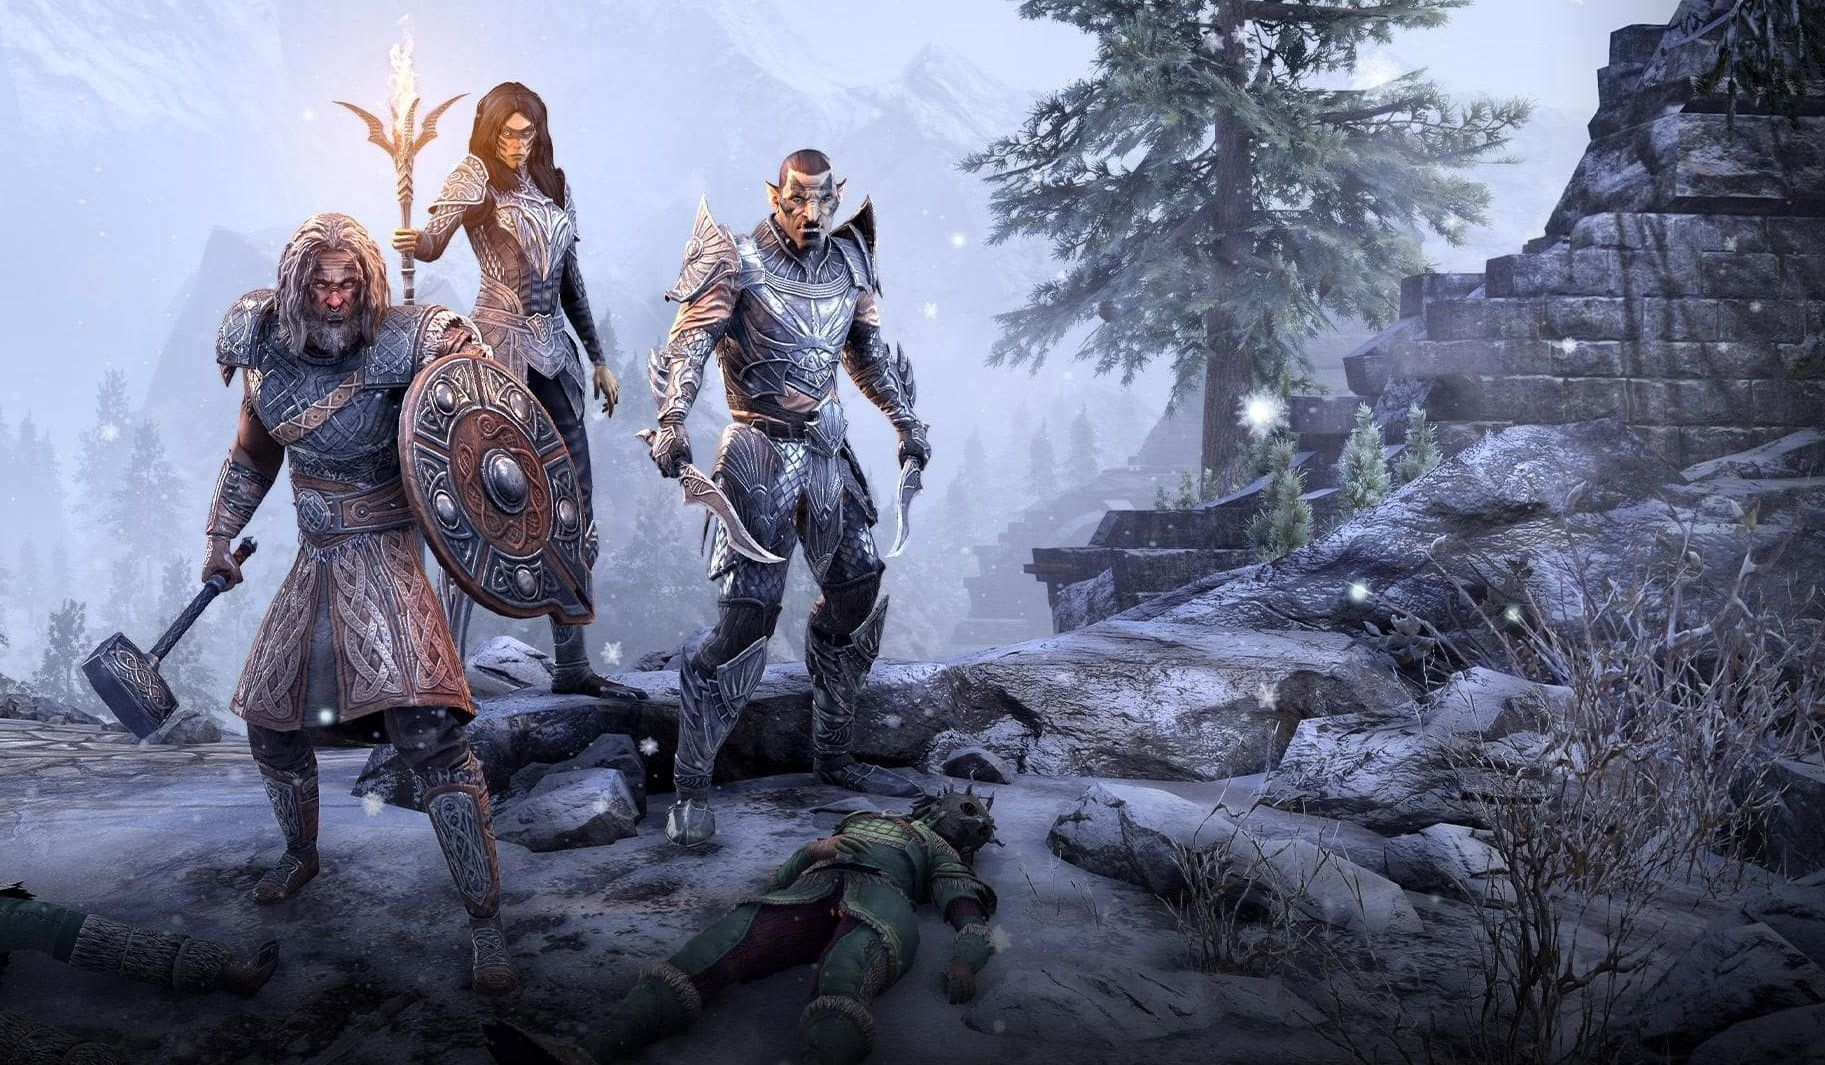 Game Titles To Look Out For This May: Elder Scrolls Online – Greymoor, Maneater, And Other Promising Indie Titles